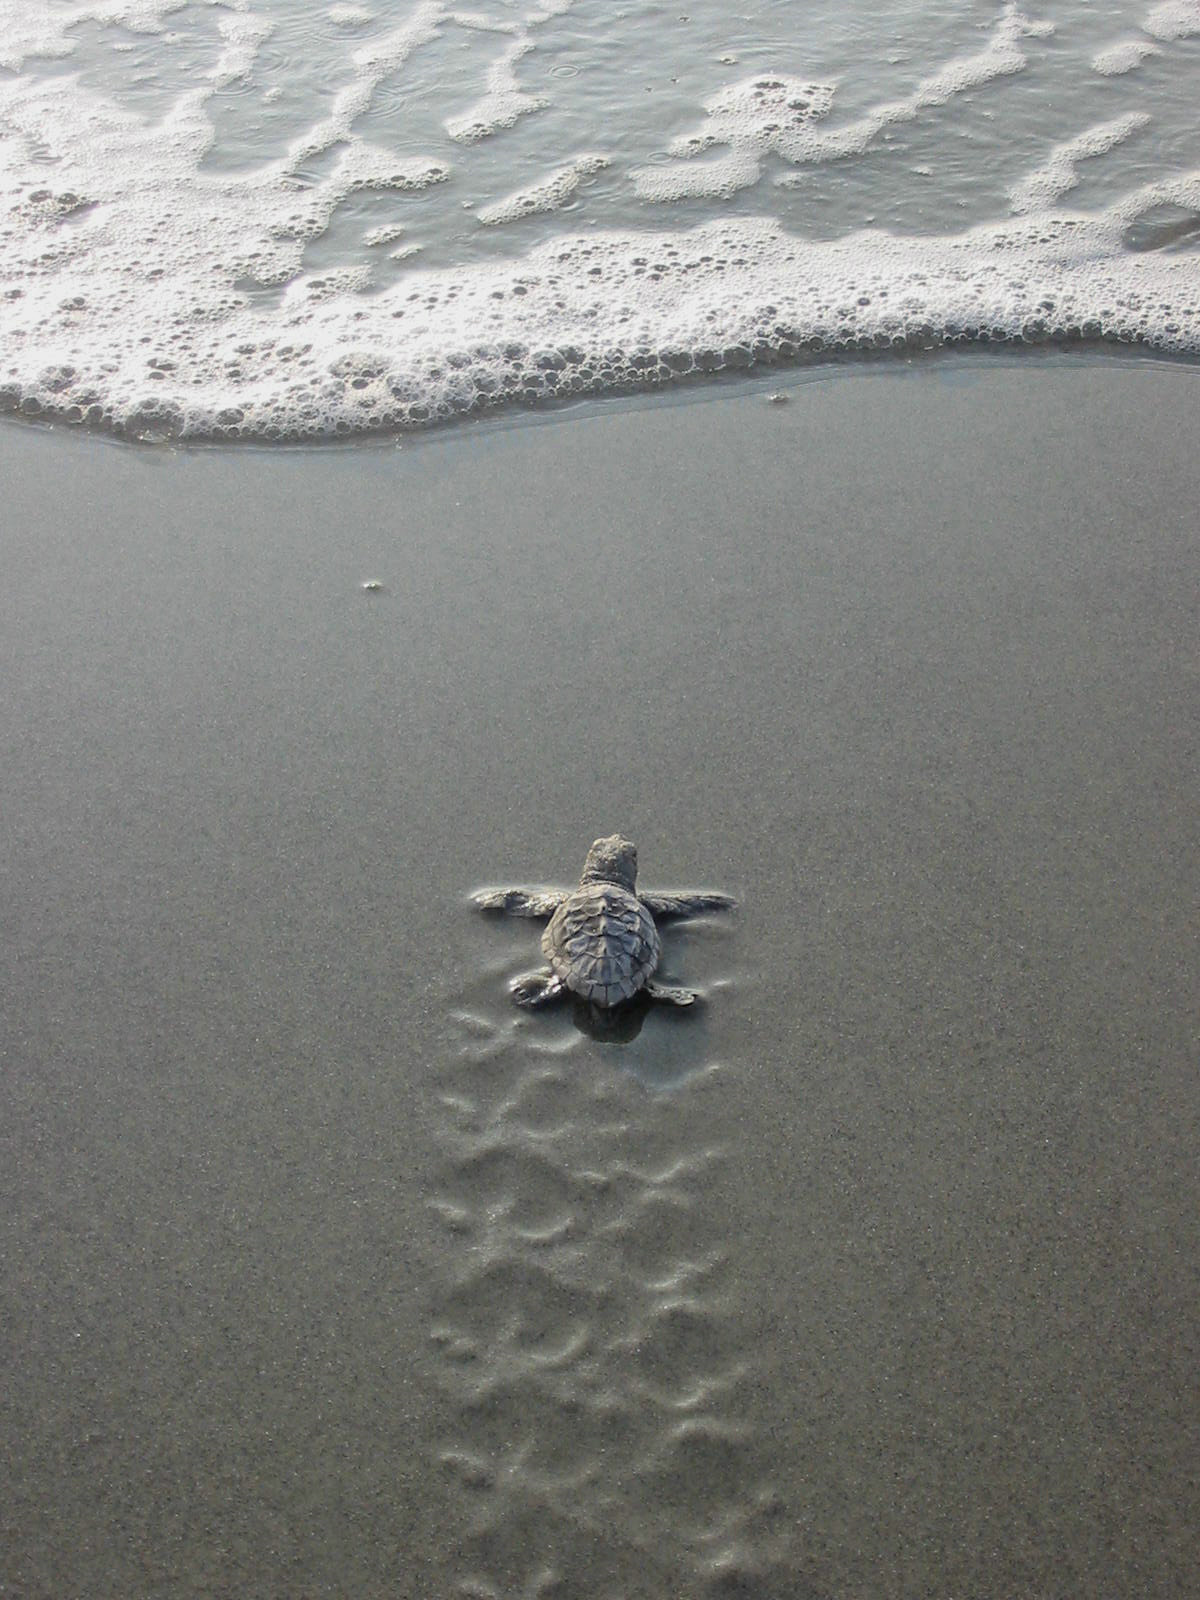 thefrogman:  Baby sea turtle leaving DeBordieu Beach. [debnews4u]